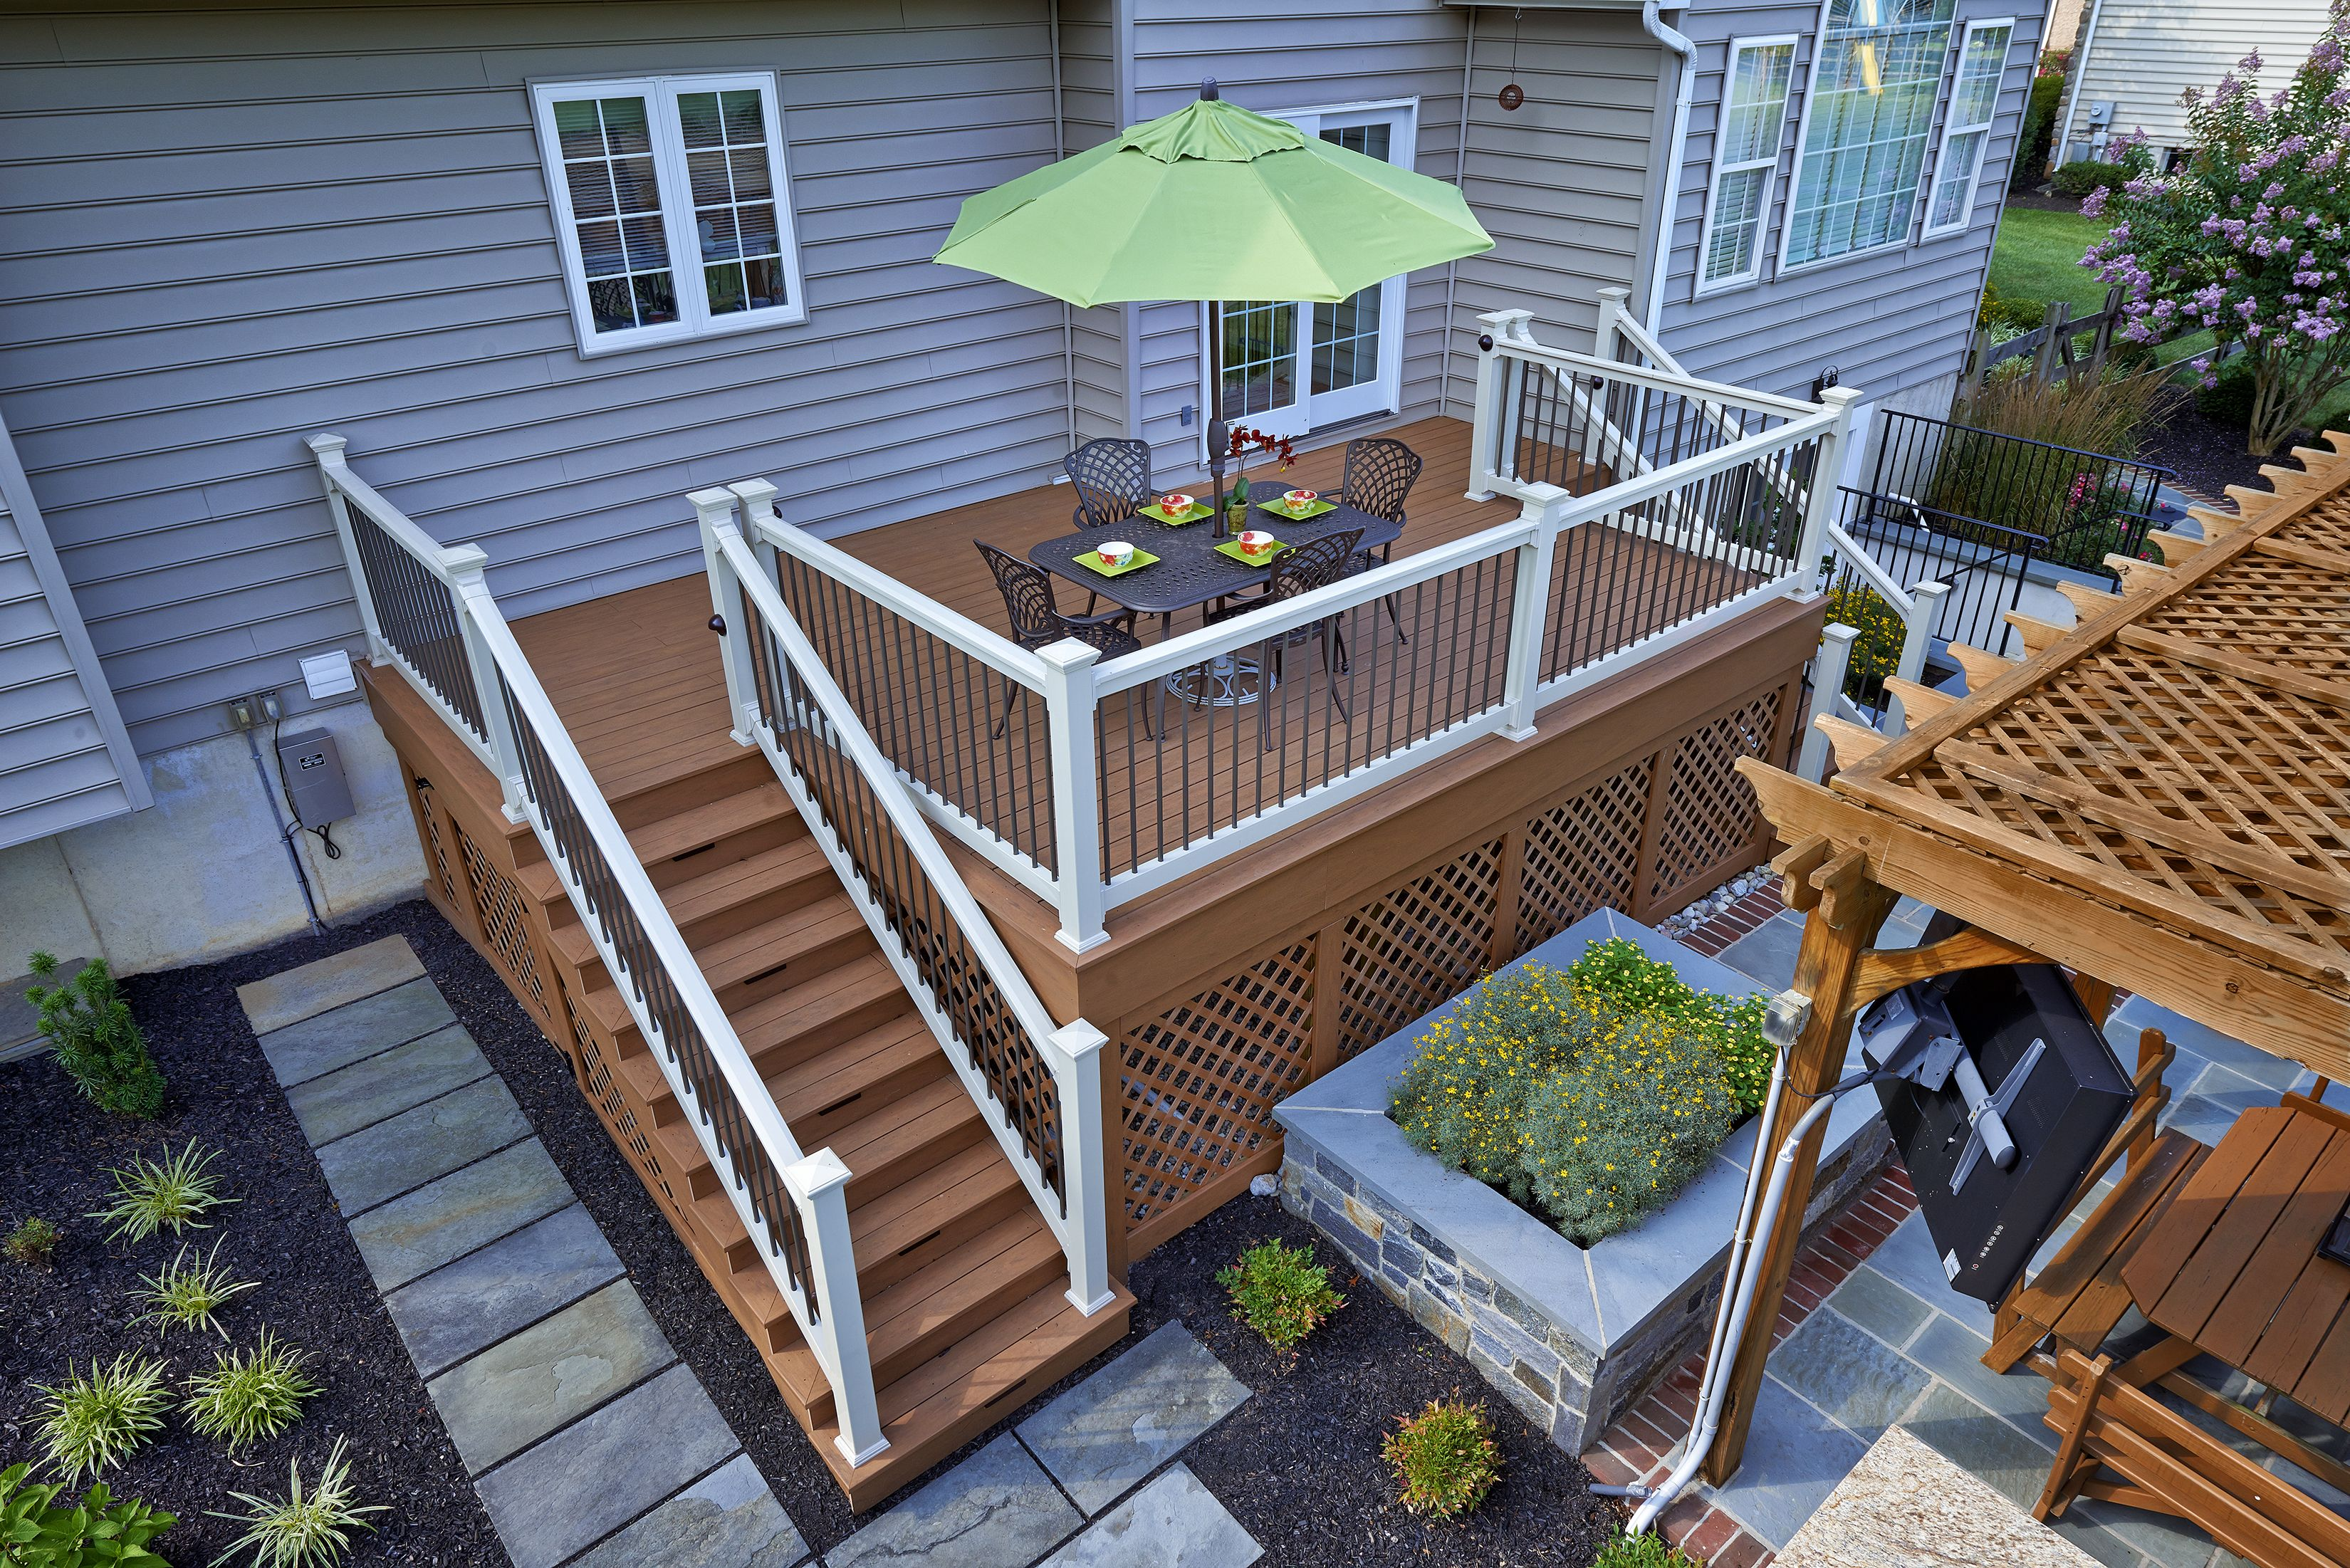 Outdoor Living | Deck designs backyard, Outdoor living ... on Disabatino Outdoor Living id=36966